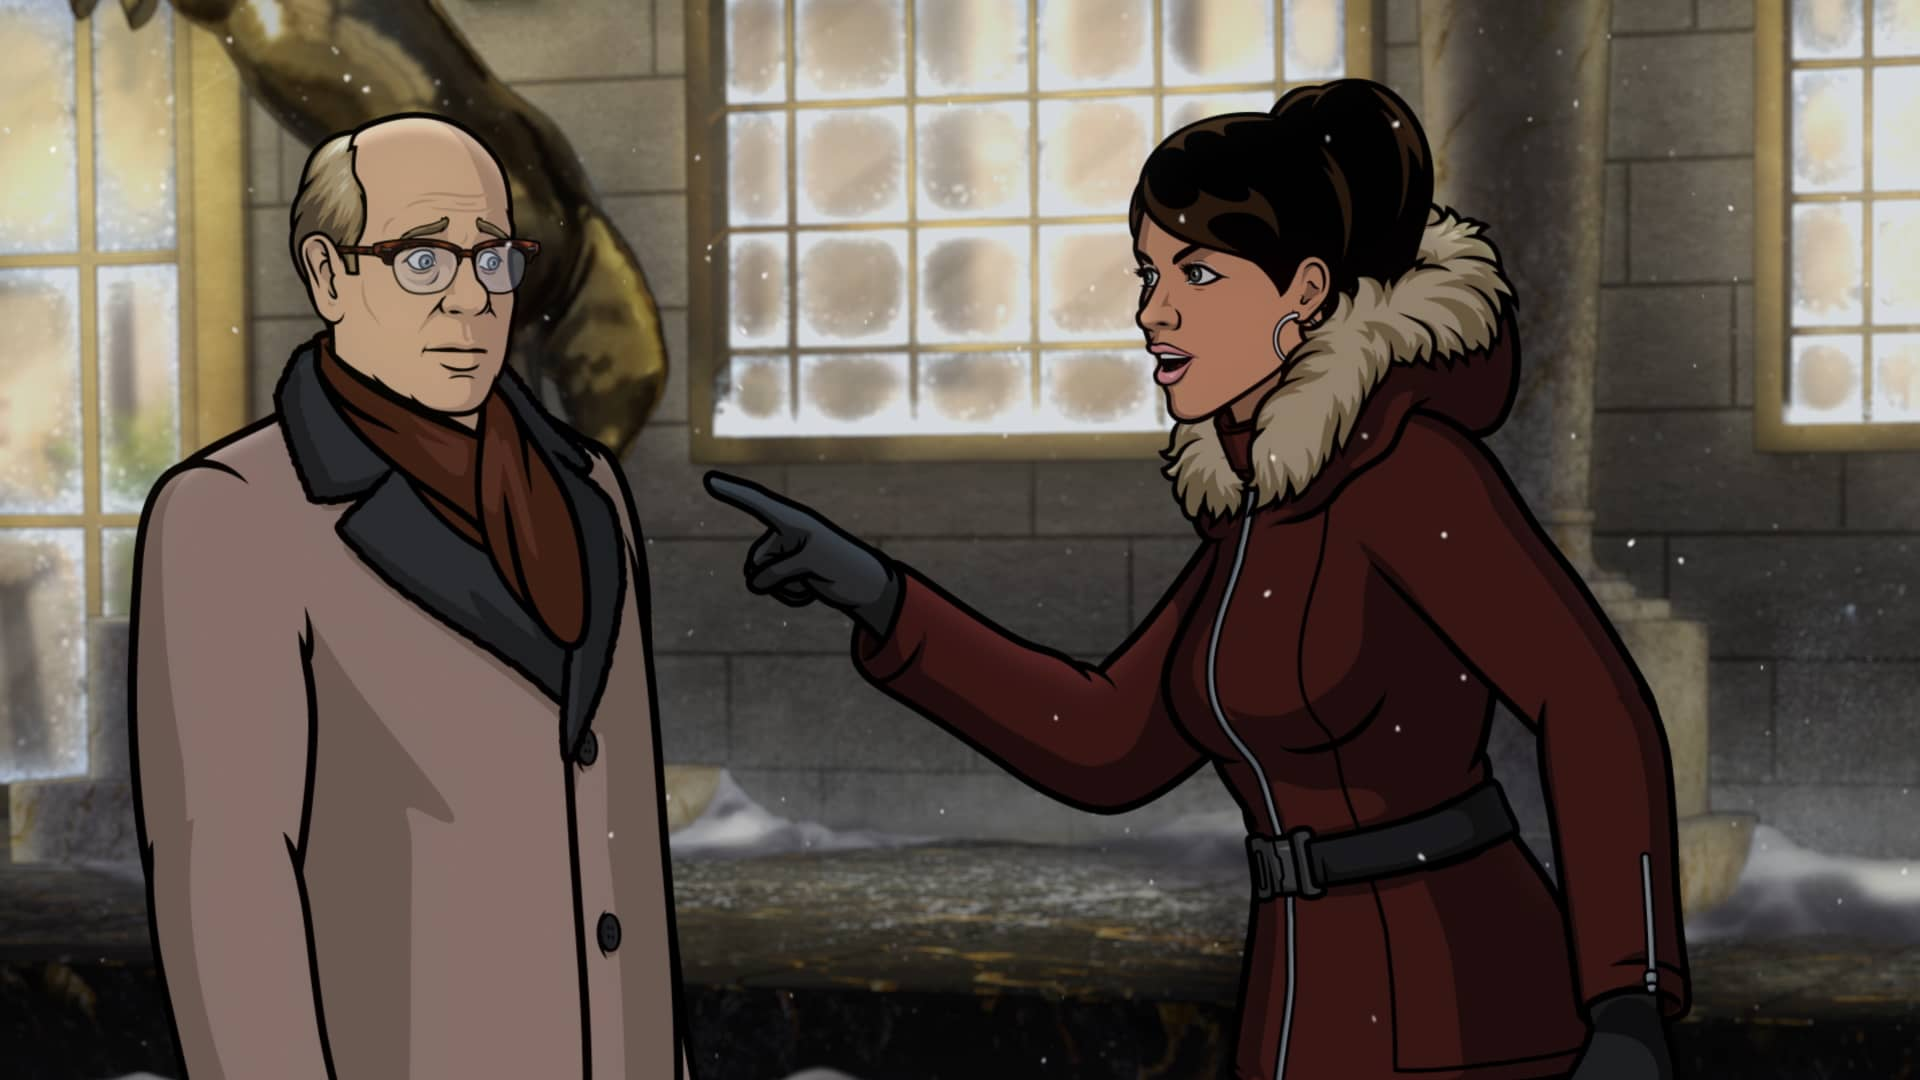 "ARCHER -- ""Caught Napping"" -- Season 11, Episode 7 (Airs October 21) Pictured: Robert (voice of Stephen Tobolowsky), Lana Kane (voice of Aisha Tyler). CR: FXX"